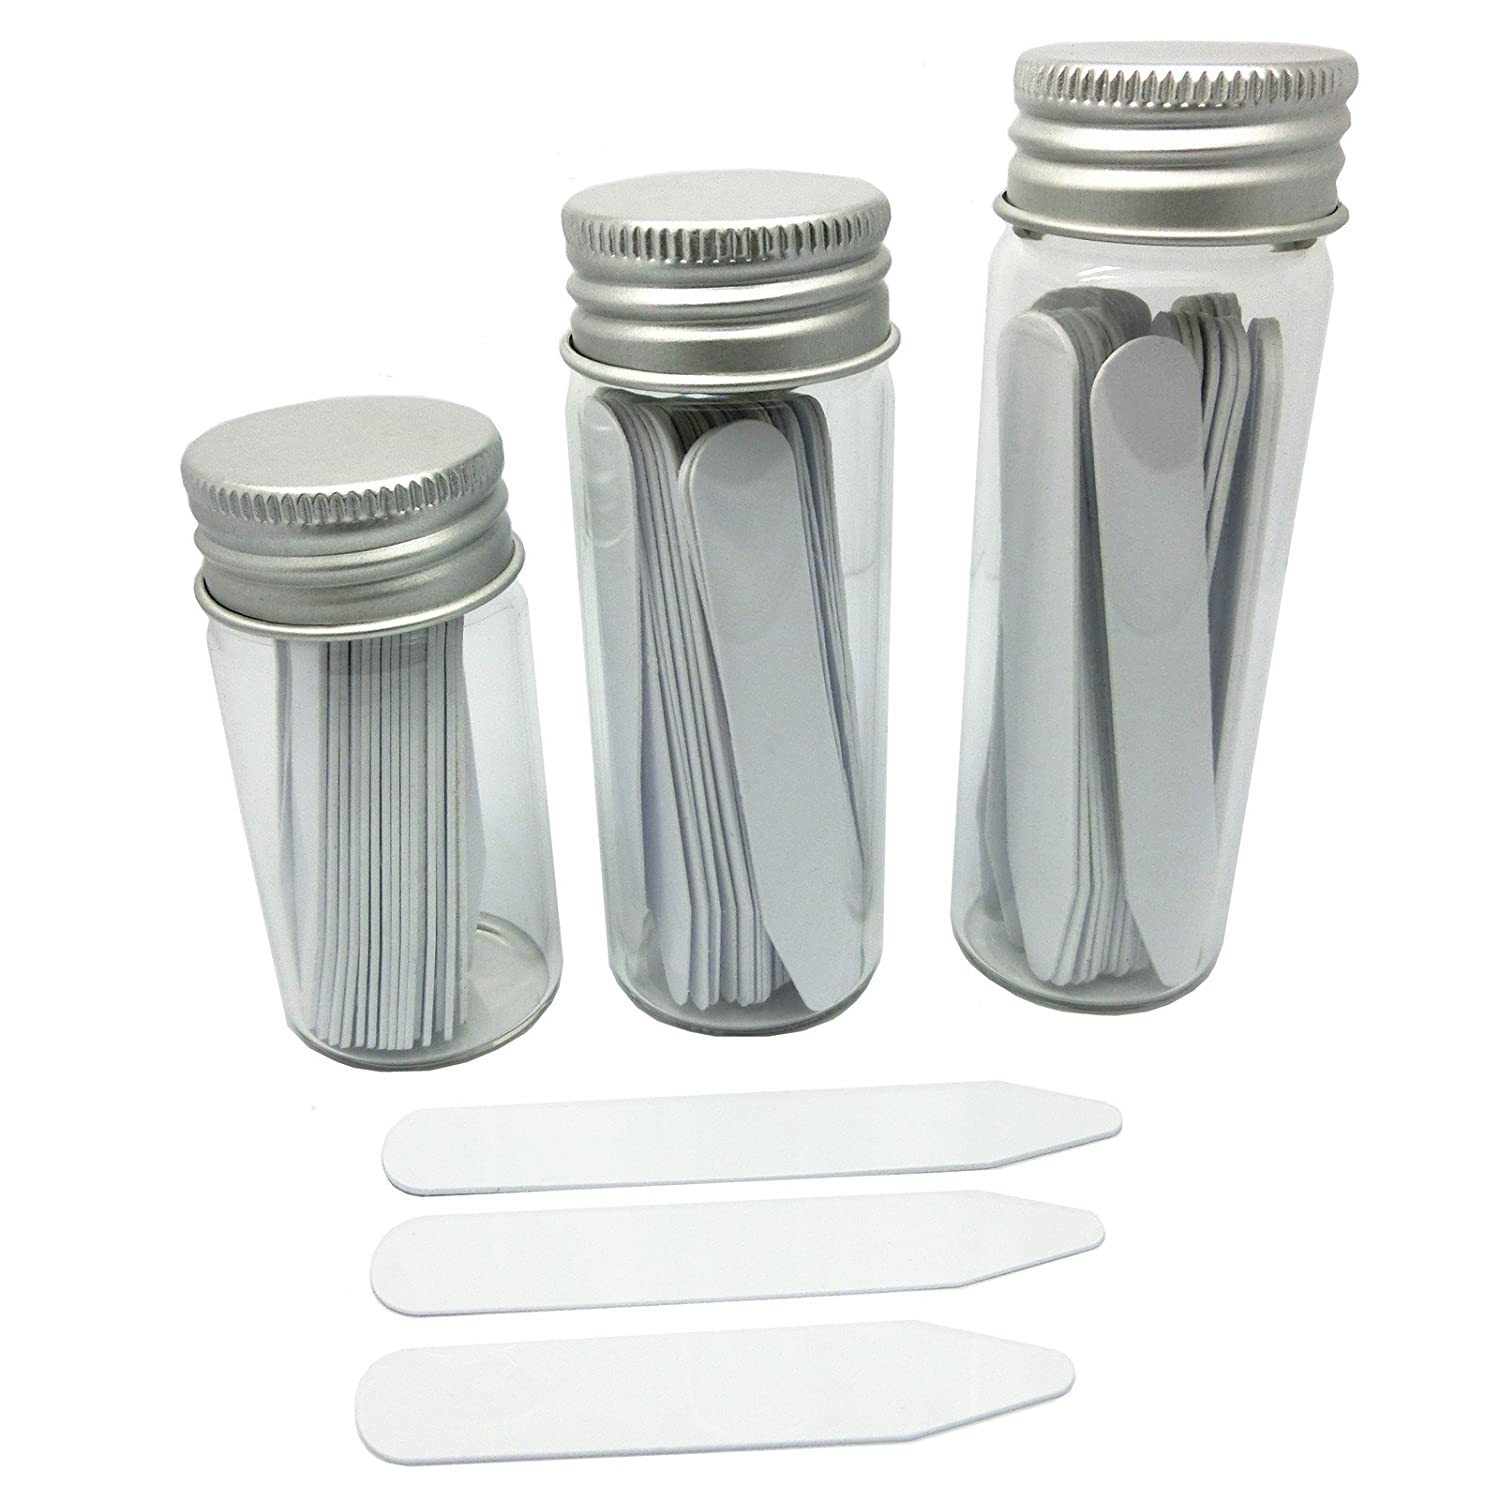 Shang Zun 84 Pcs Plastic Collar Stays in 3 Glass Bottles, 2